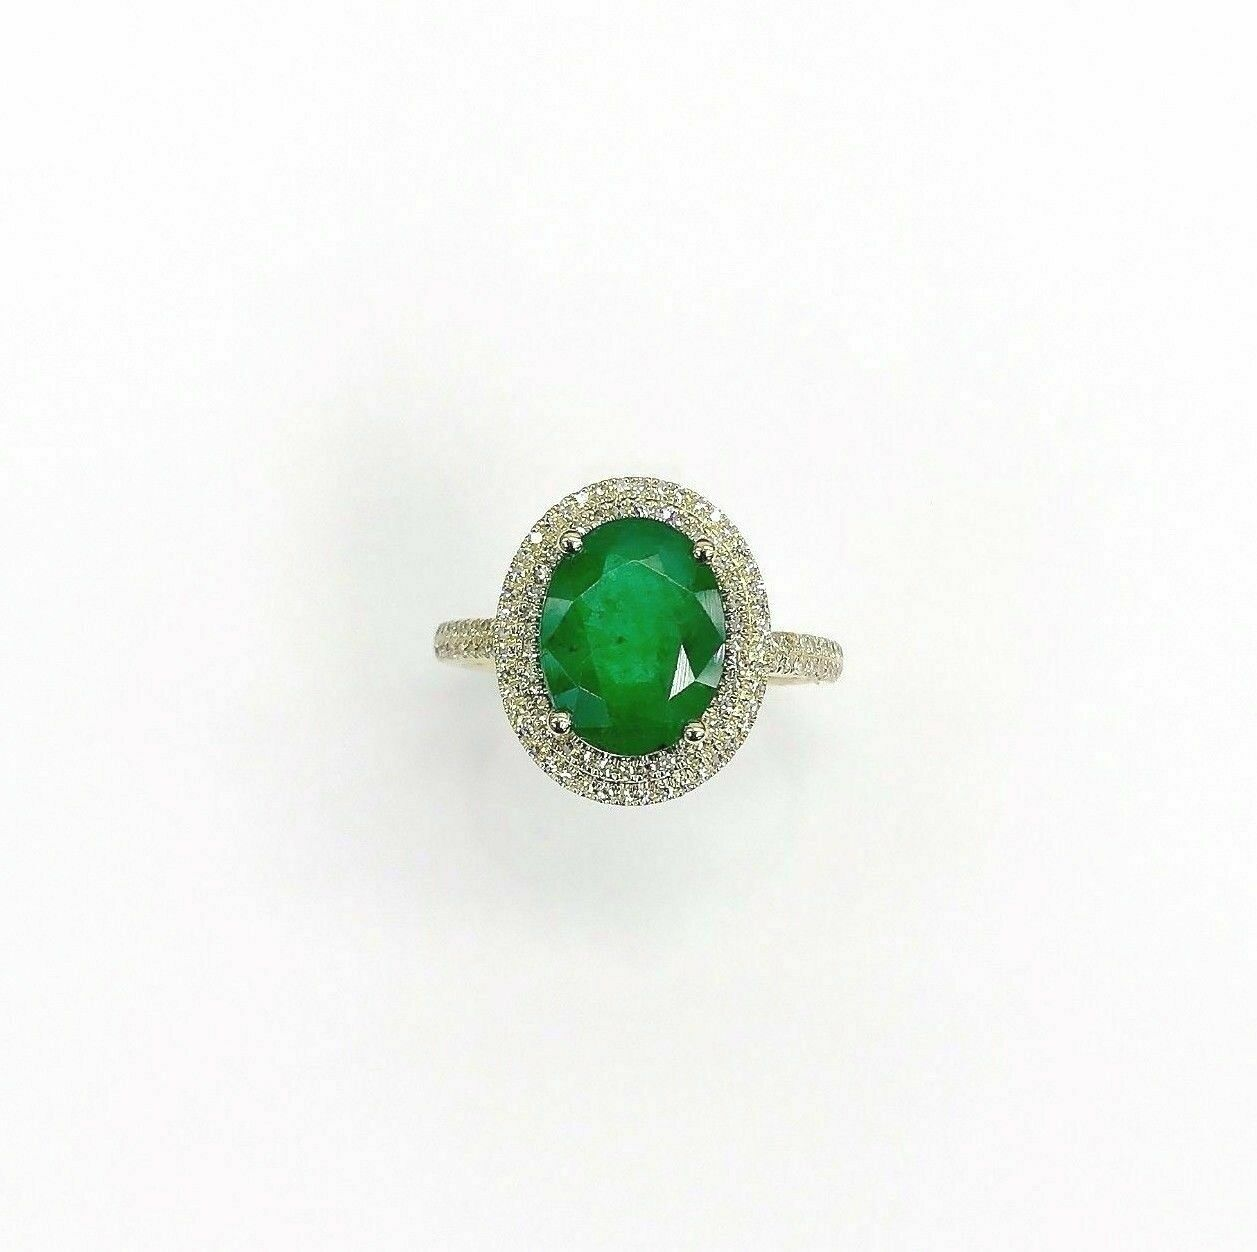 2.95 Carats t.w. Diamond and Emerald Halo Ring Emerald is 2.60 Carats May Stone